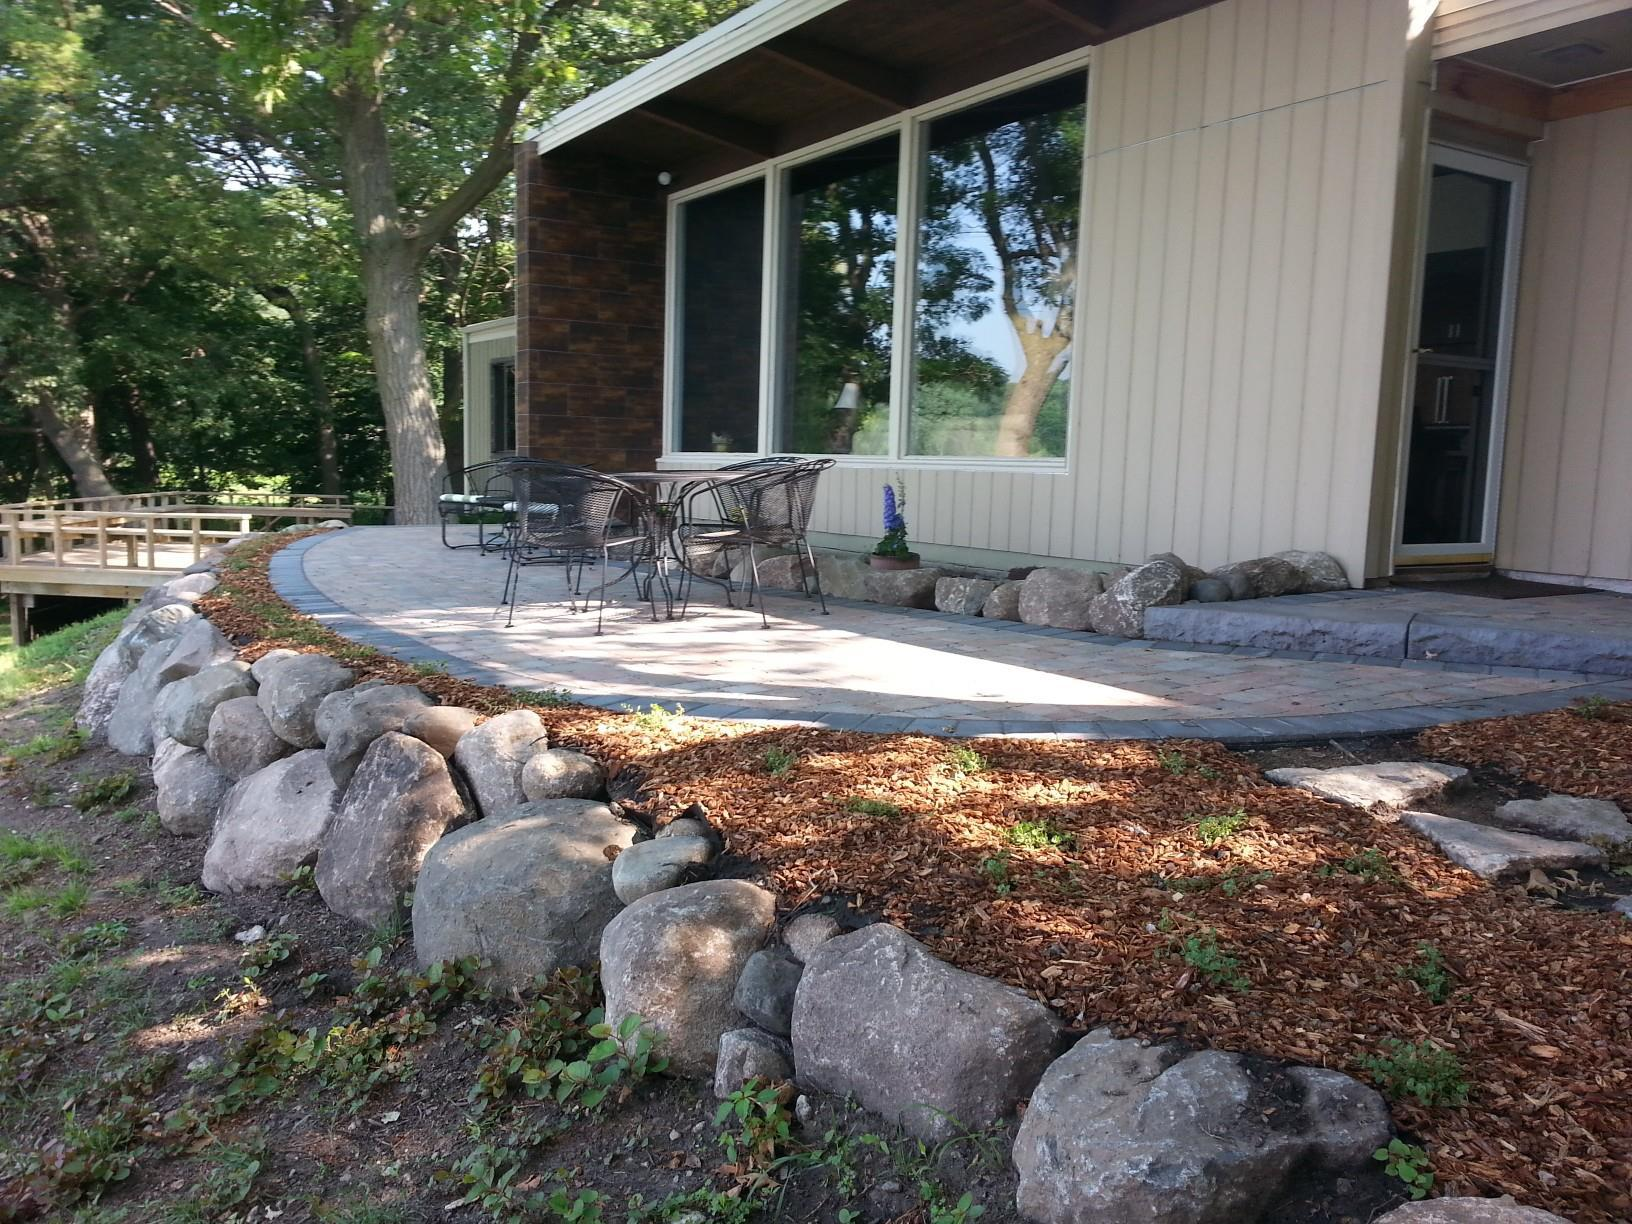 Natureview Landscaping image 5